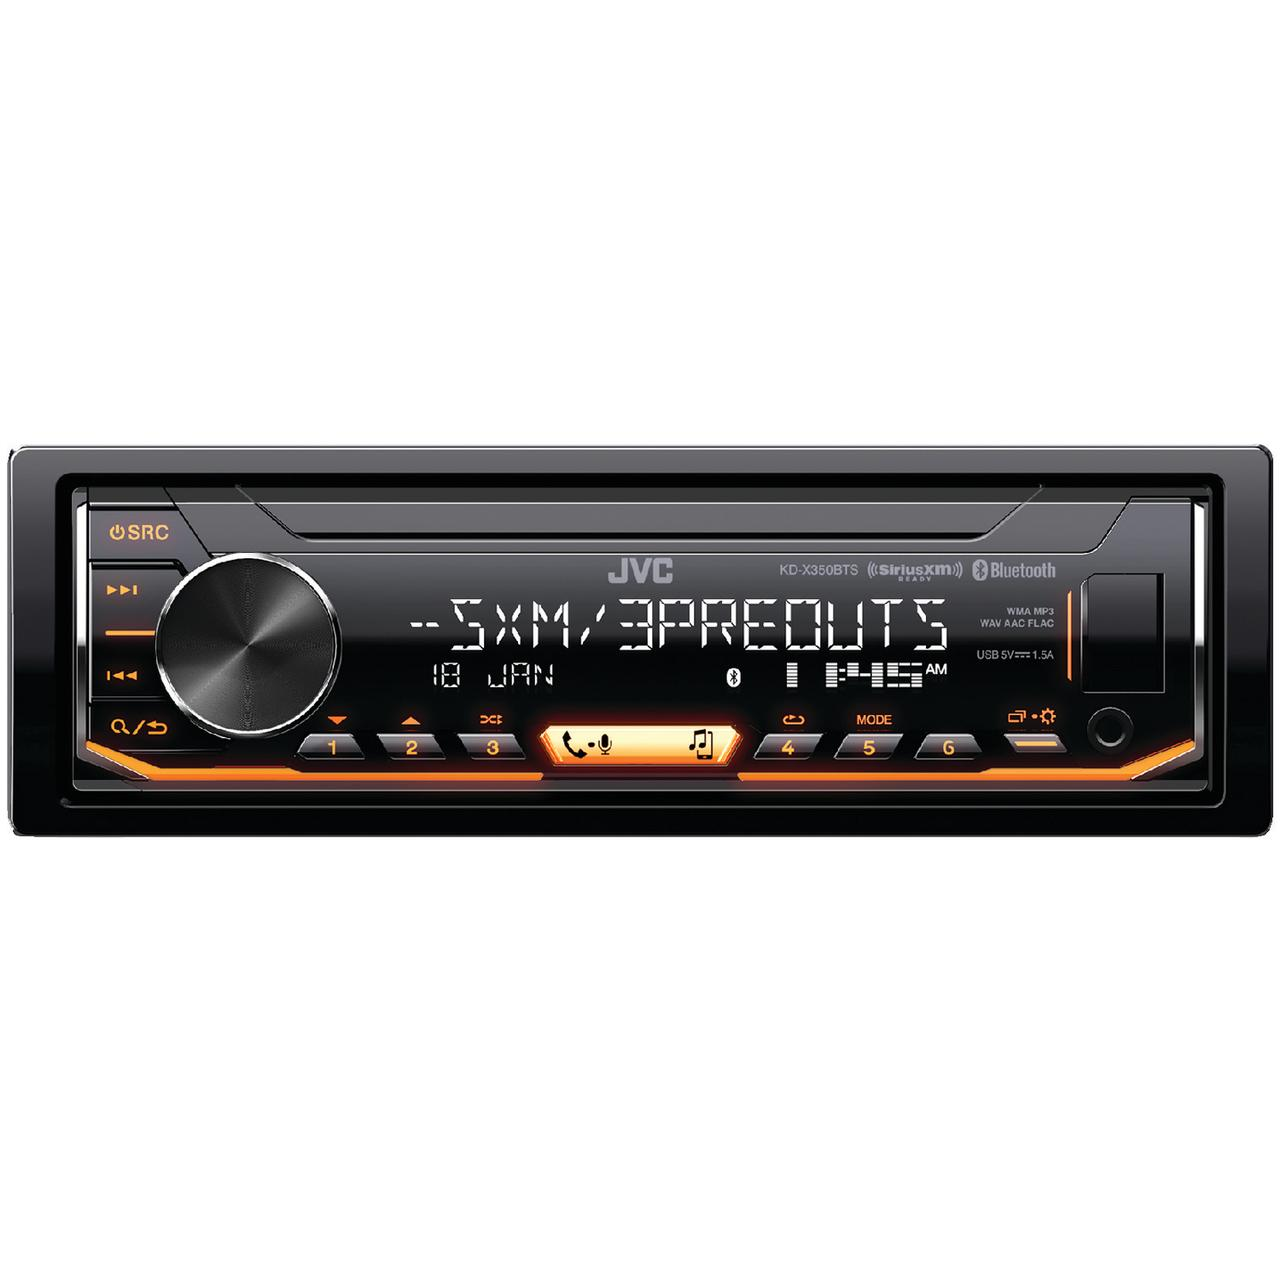 JVC Mobile KD-X350BTS KD-X350BTS Single-DIN In-Dash AM/FM Digital Media Receiver with Bluetooth & SiriusXM Ready